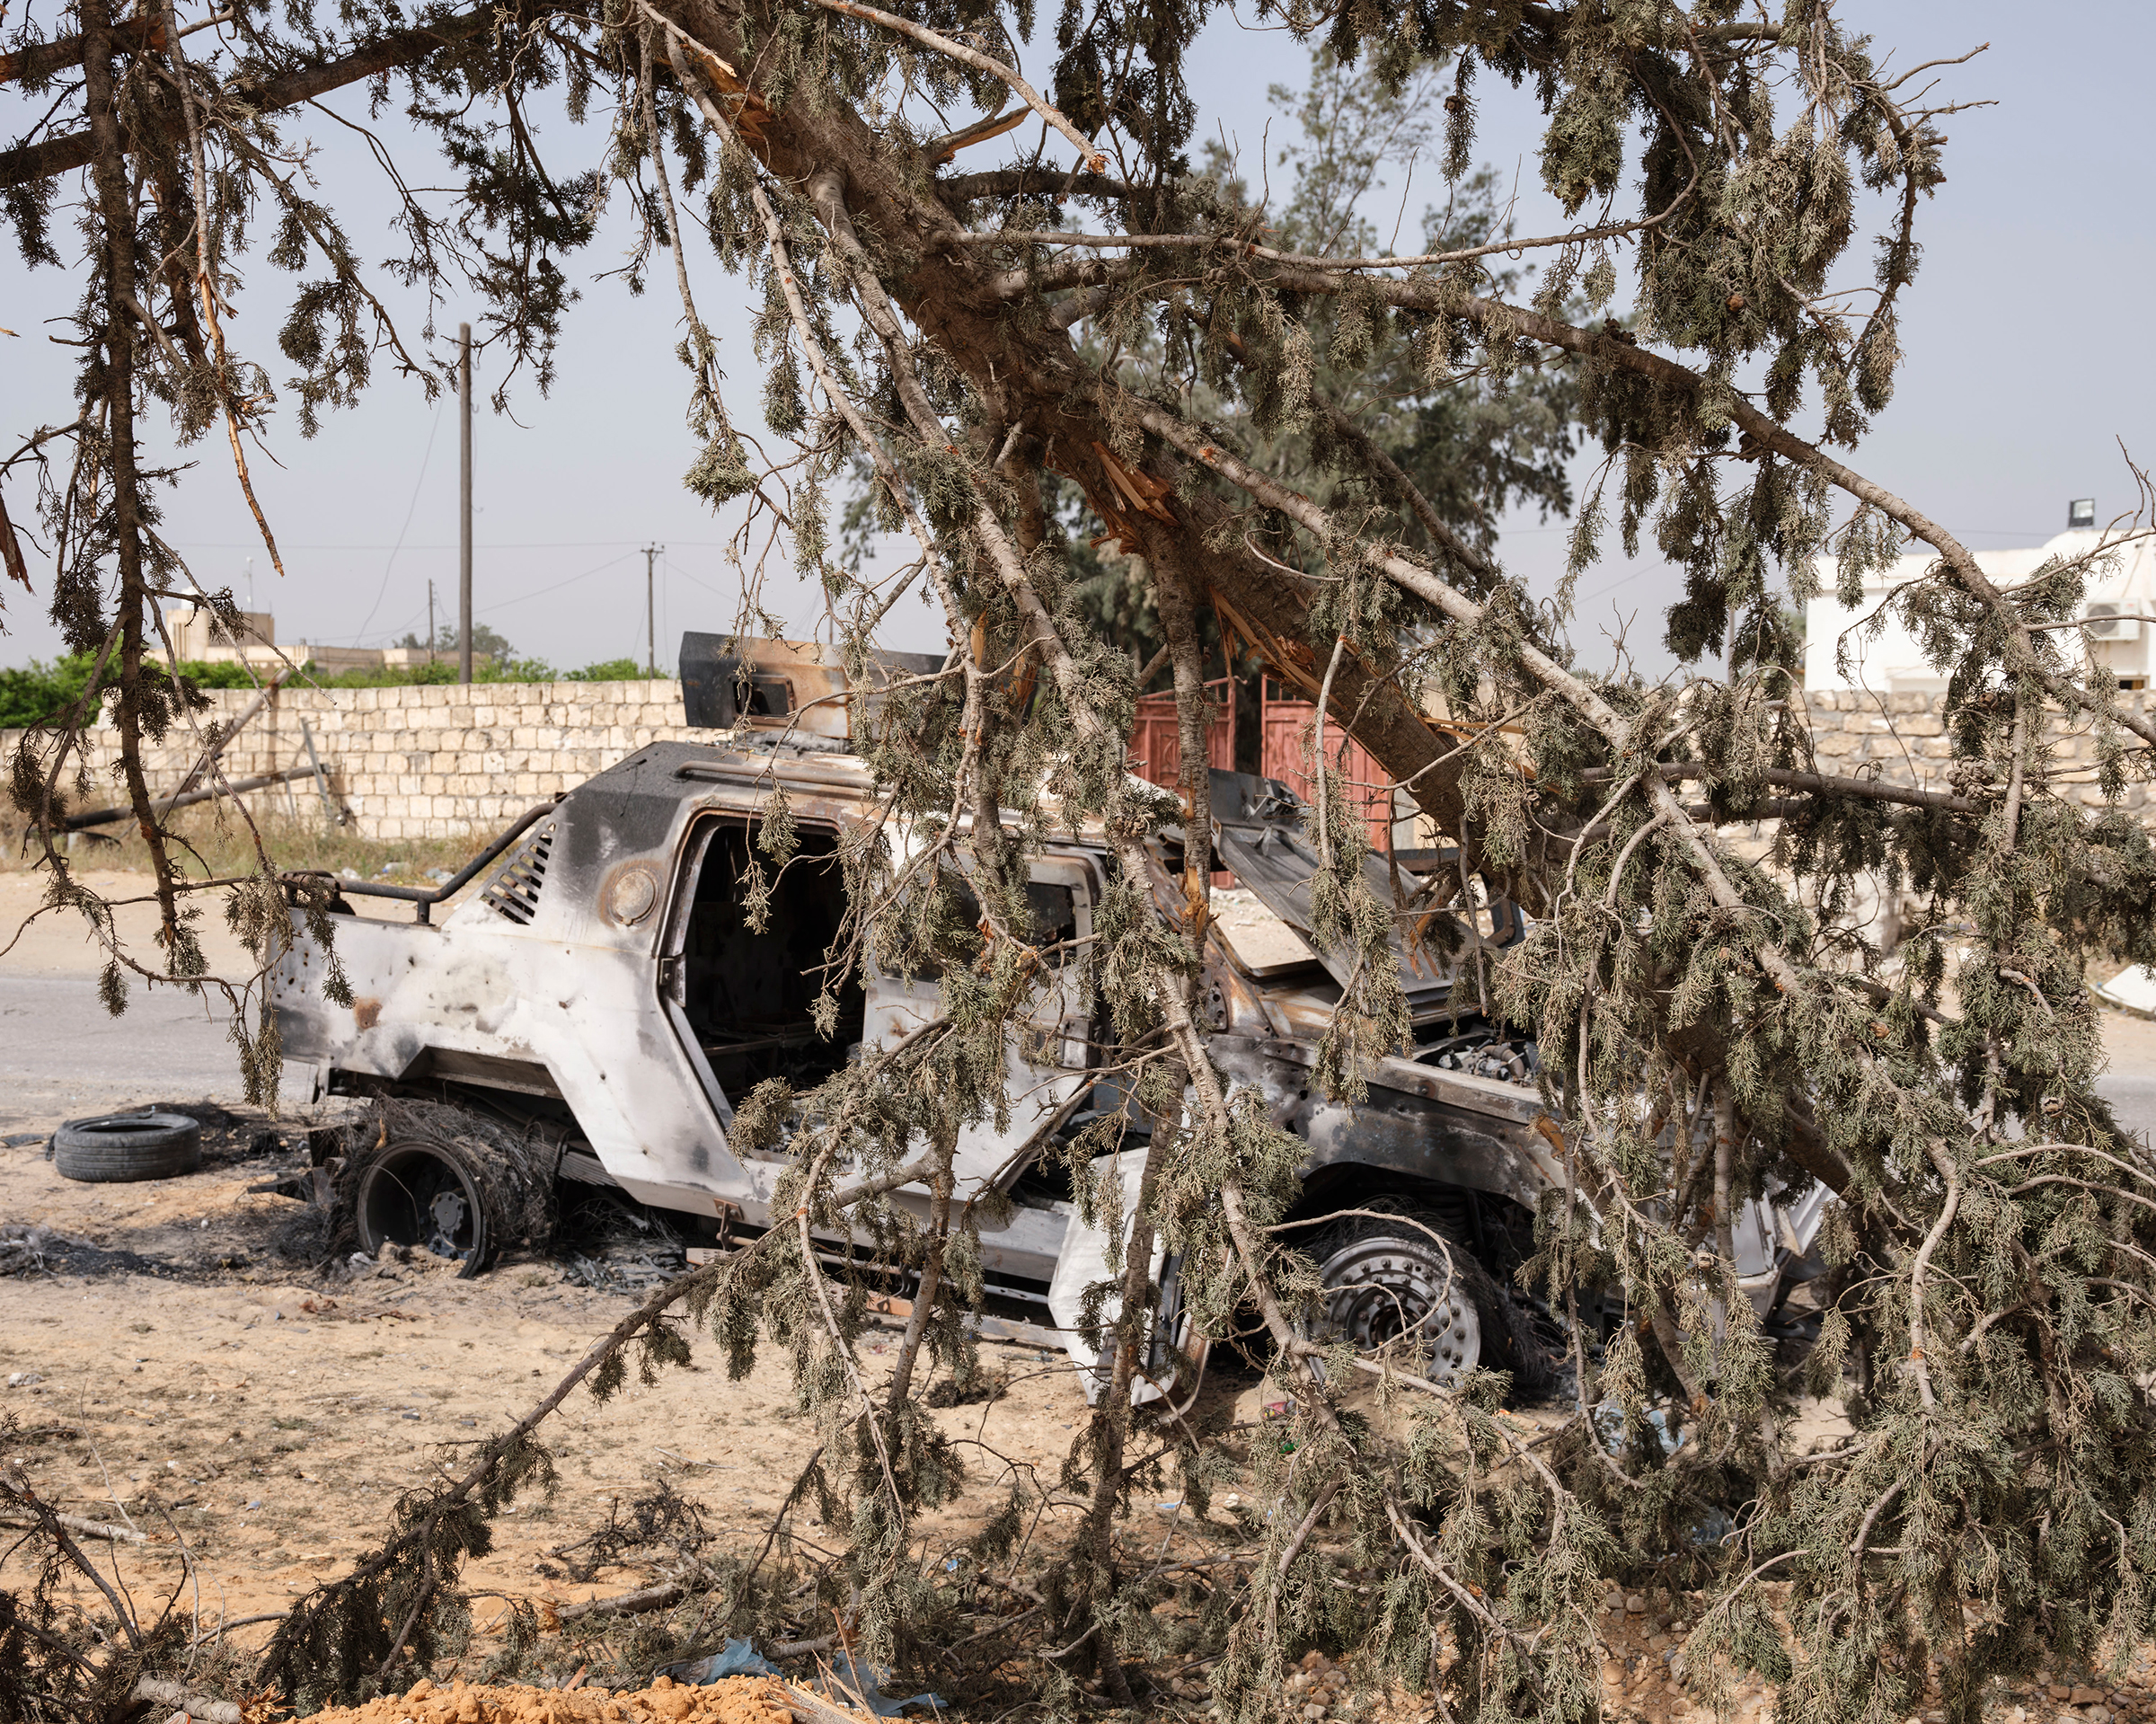 An armored vehicle of fighters loyal to Haftar was destroyed by GNA troops in the Ain Zara area in April.